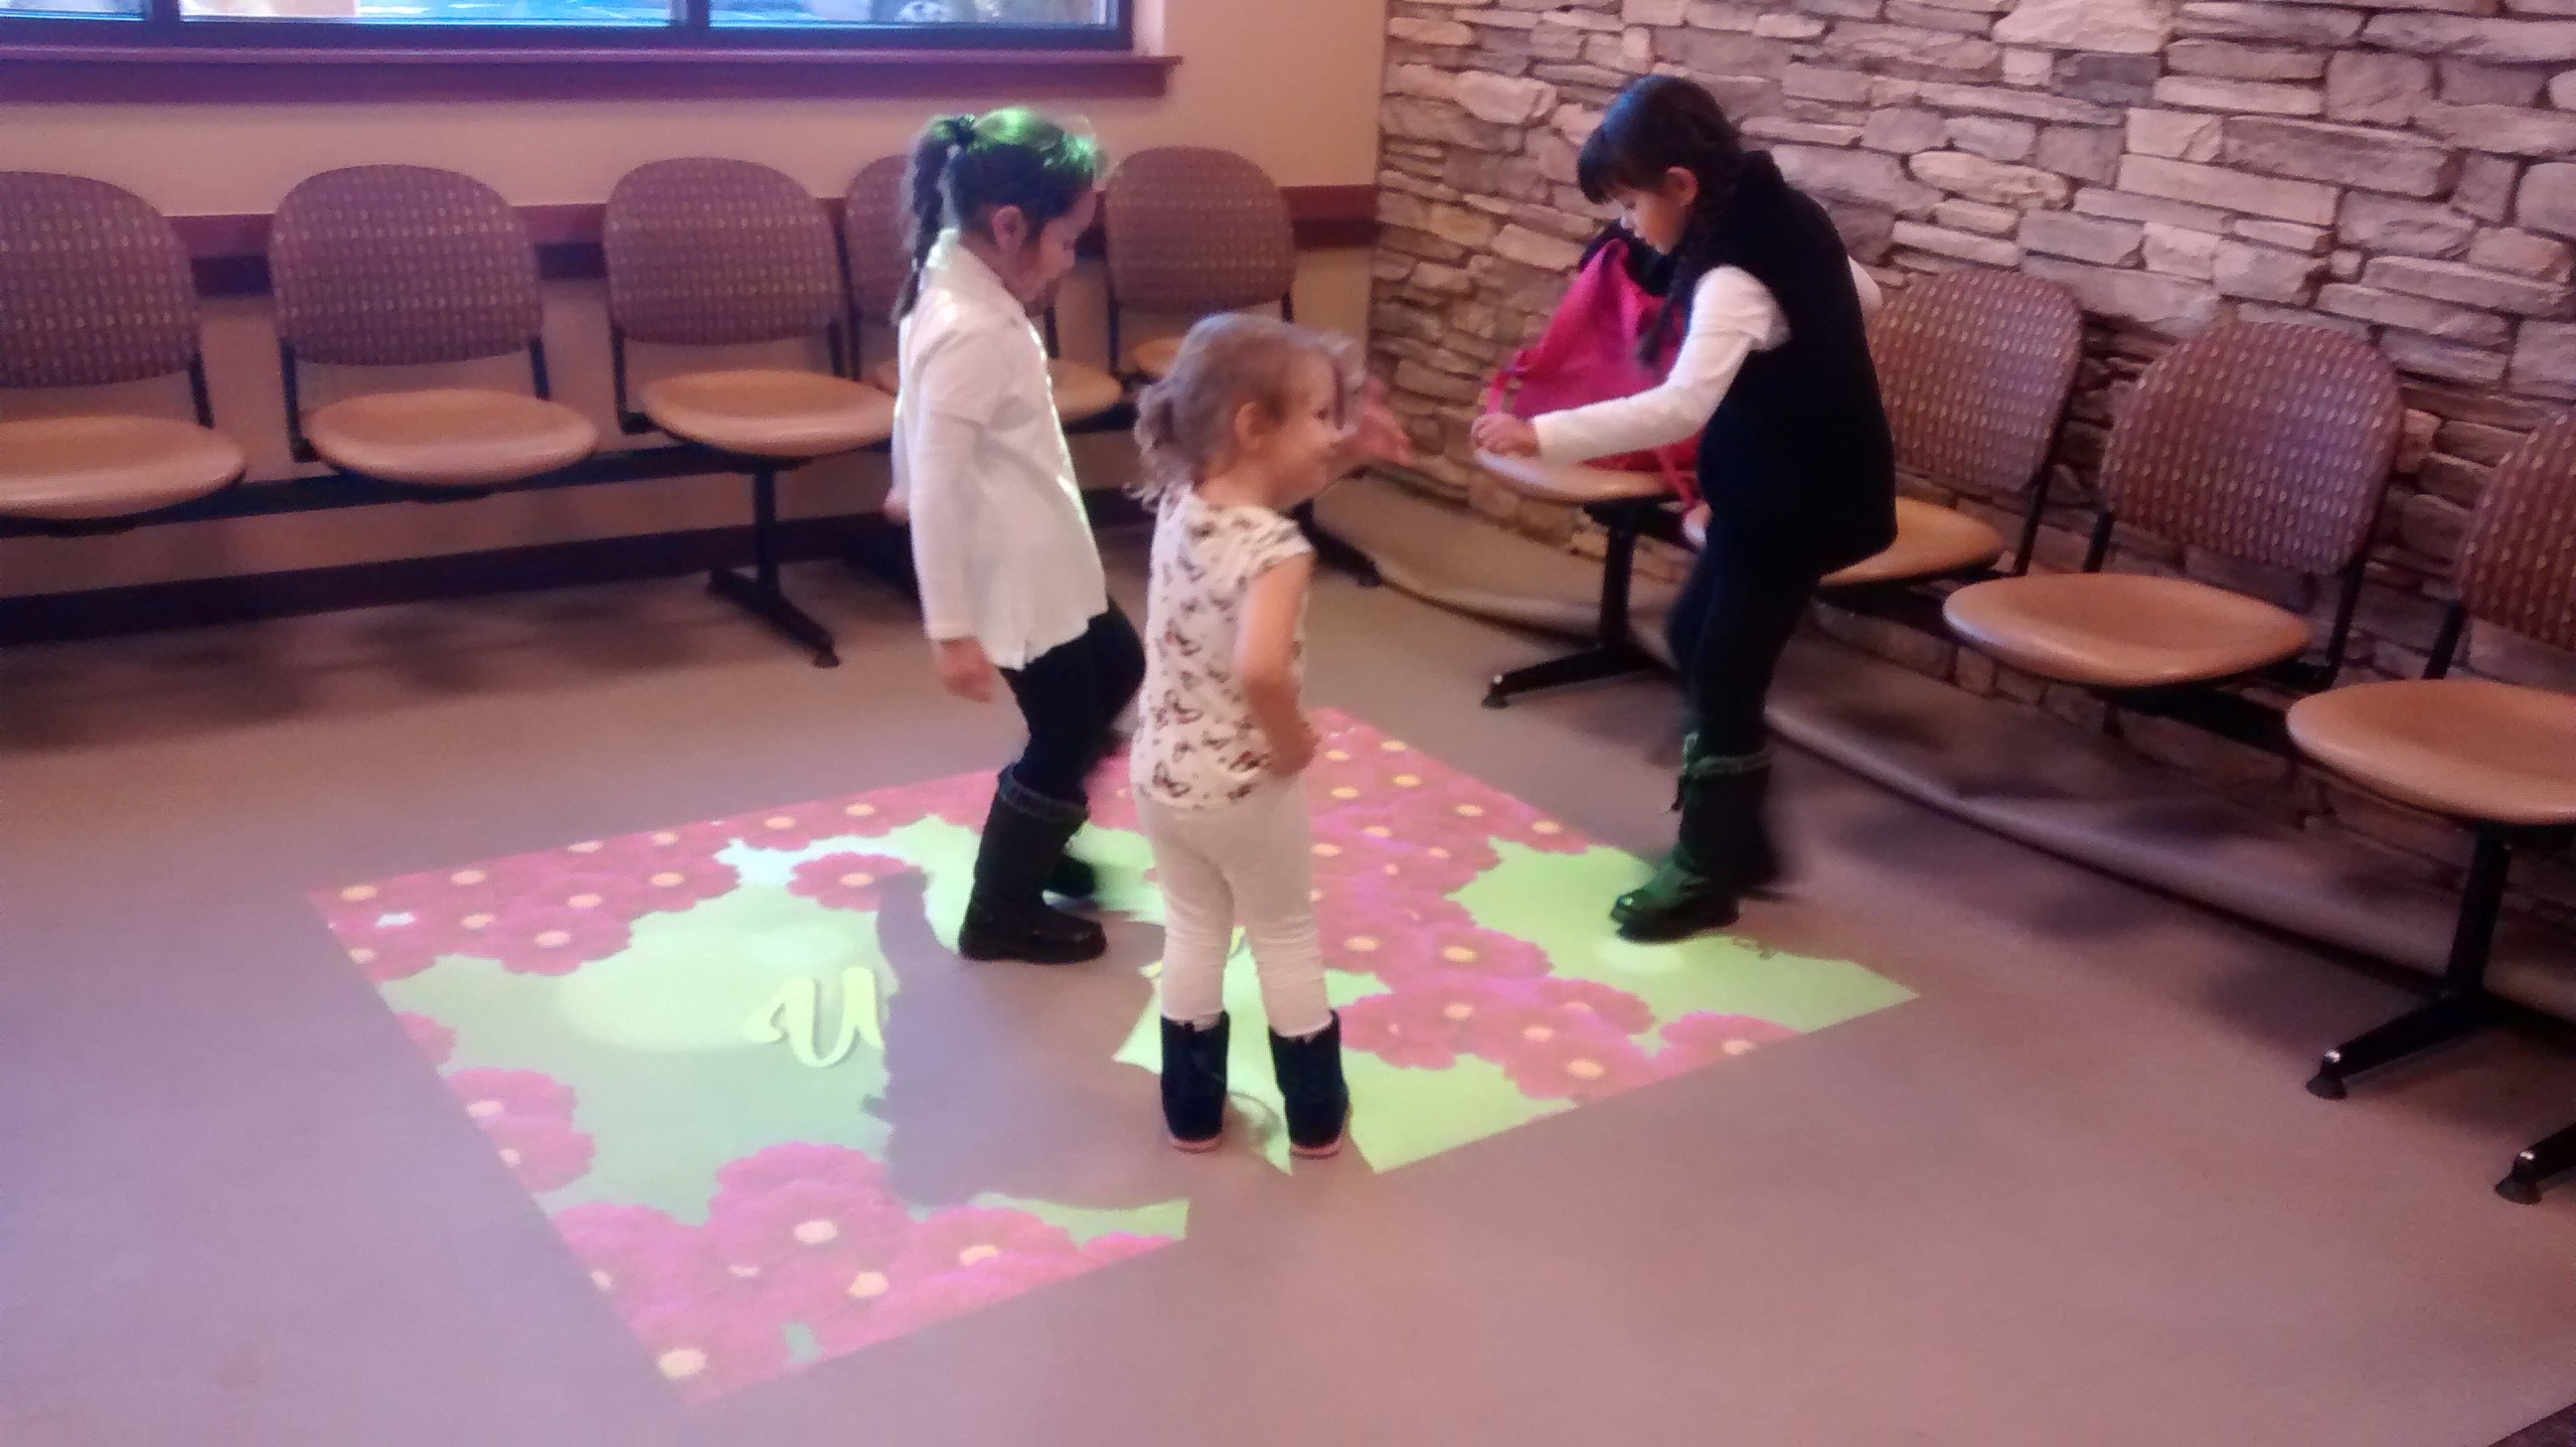 interactive-floor-for-children-hospital-2